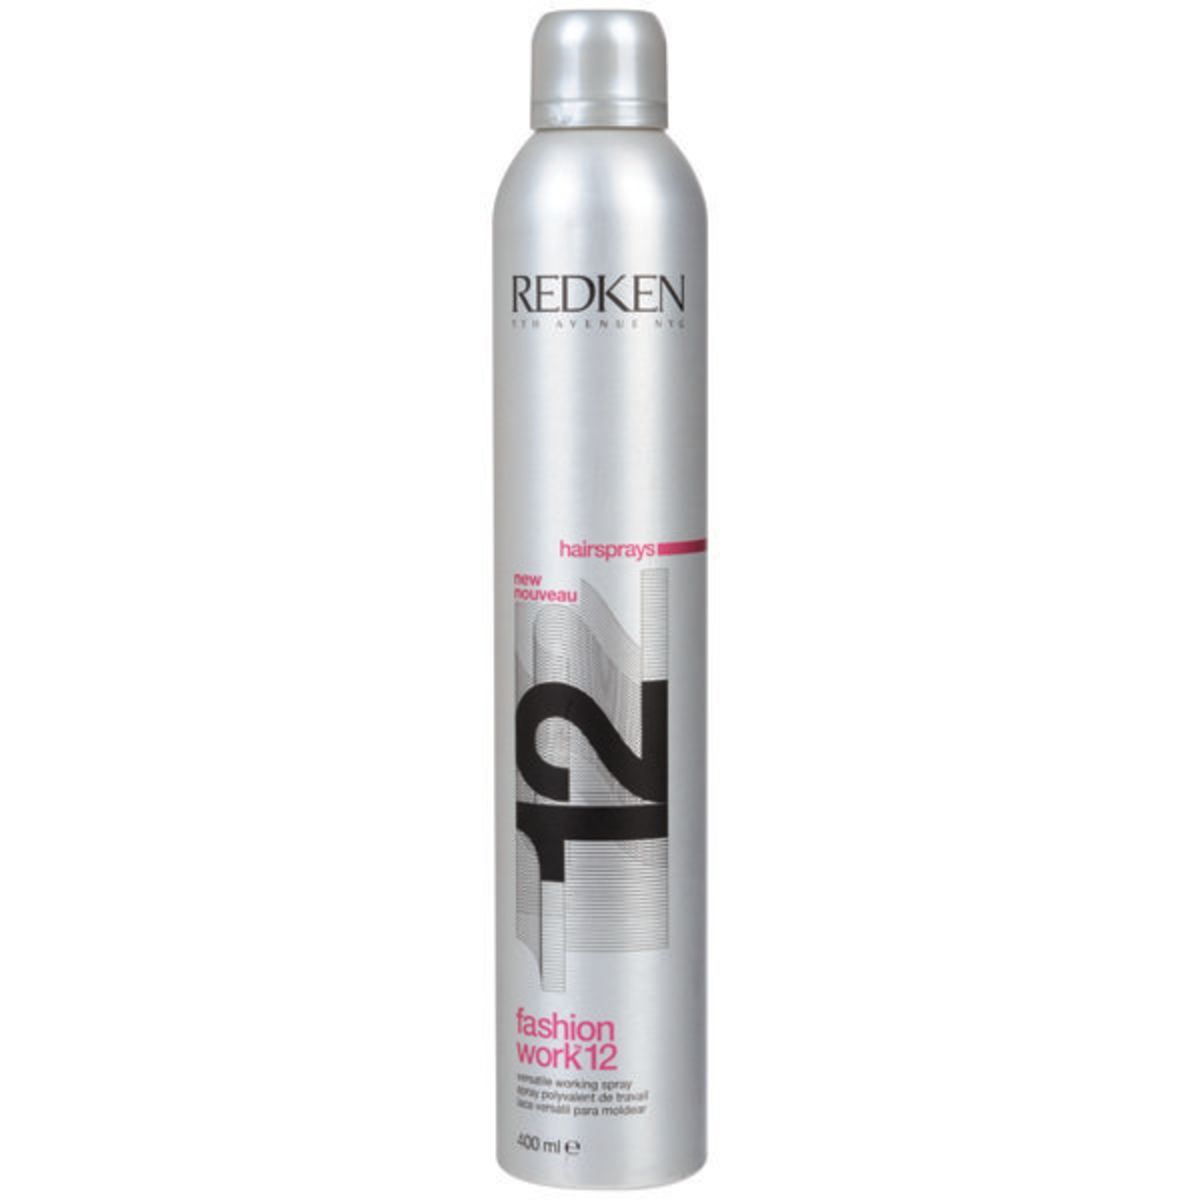 redken fashion work 12 hairspray